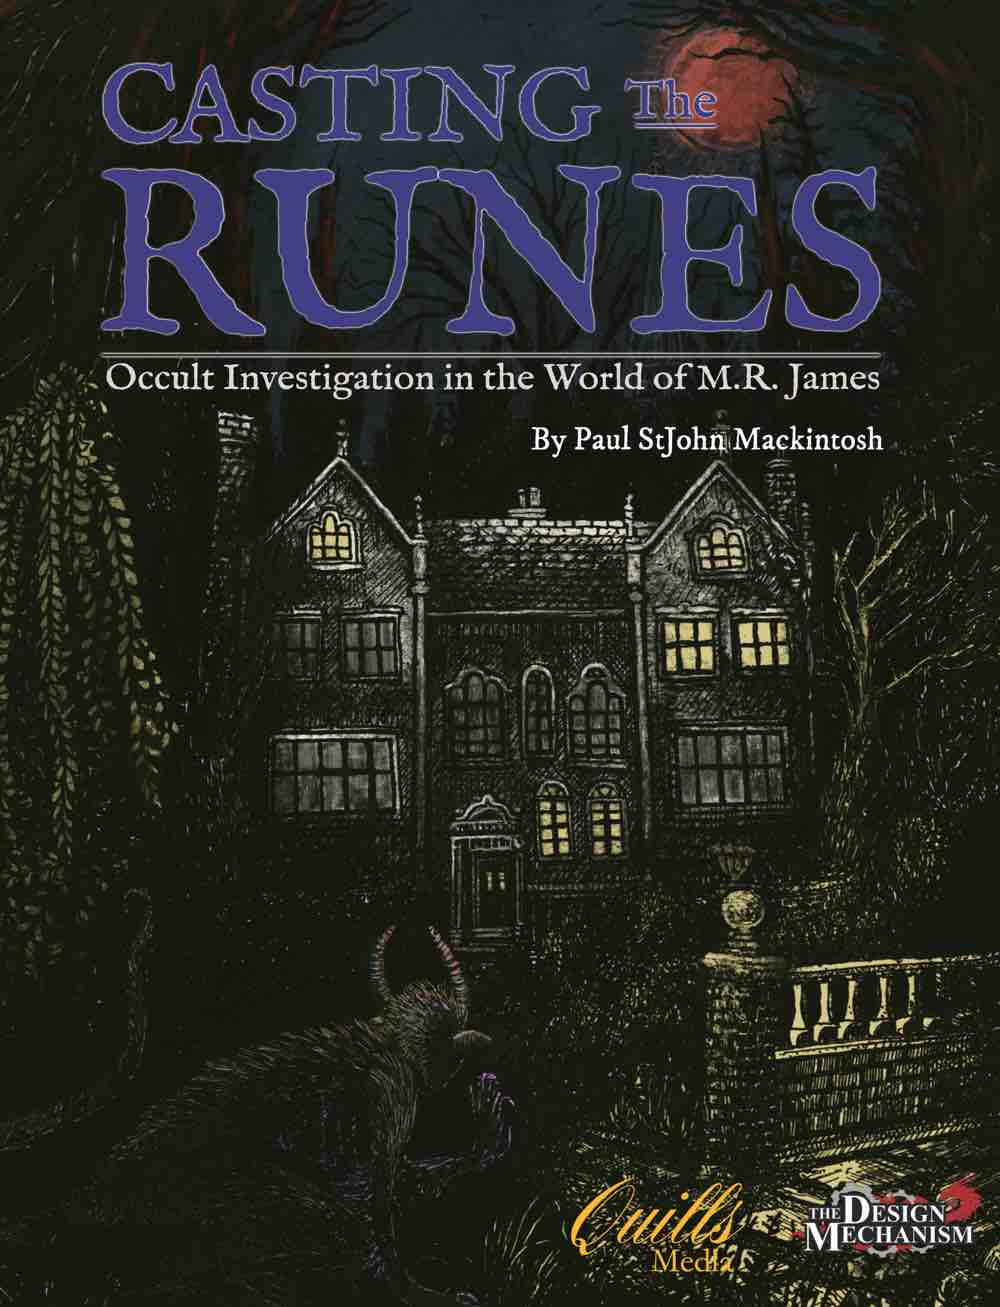 Casting the Runes: Occult Investigation in the World of M.R. James